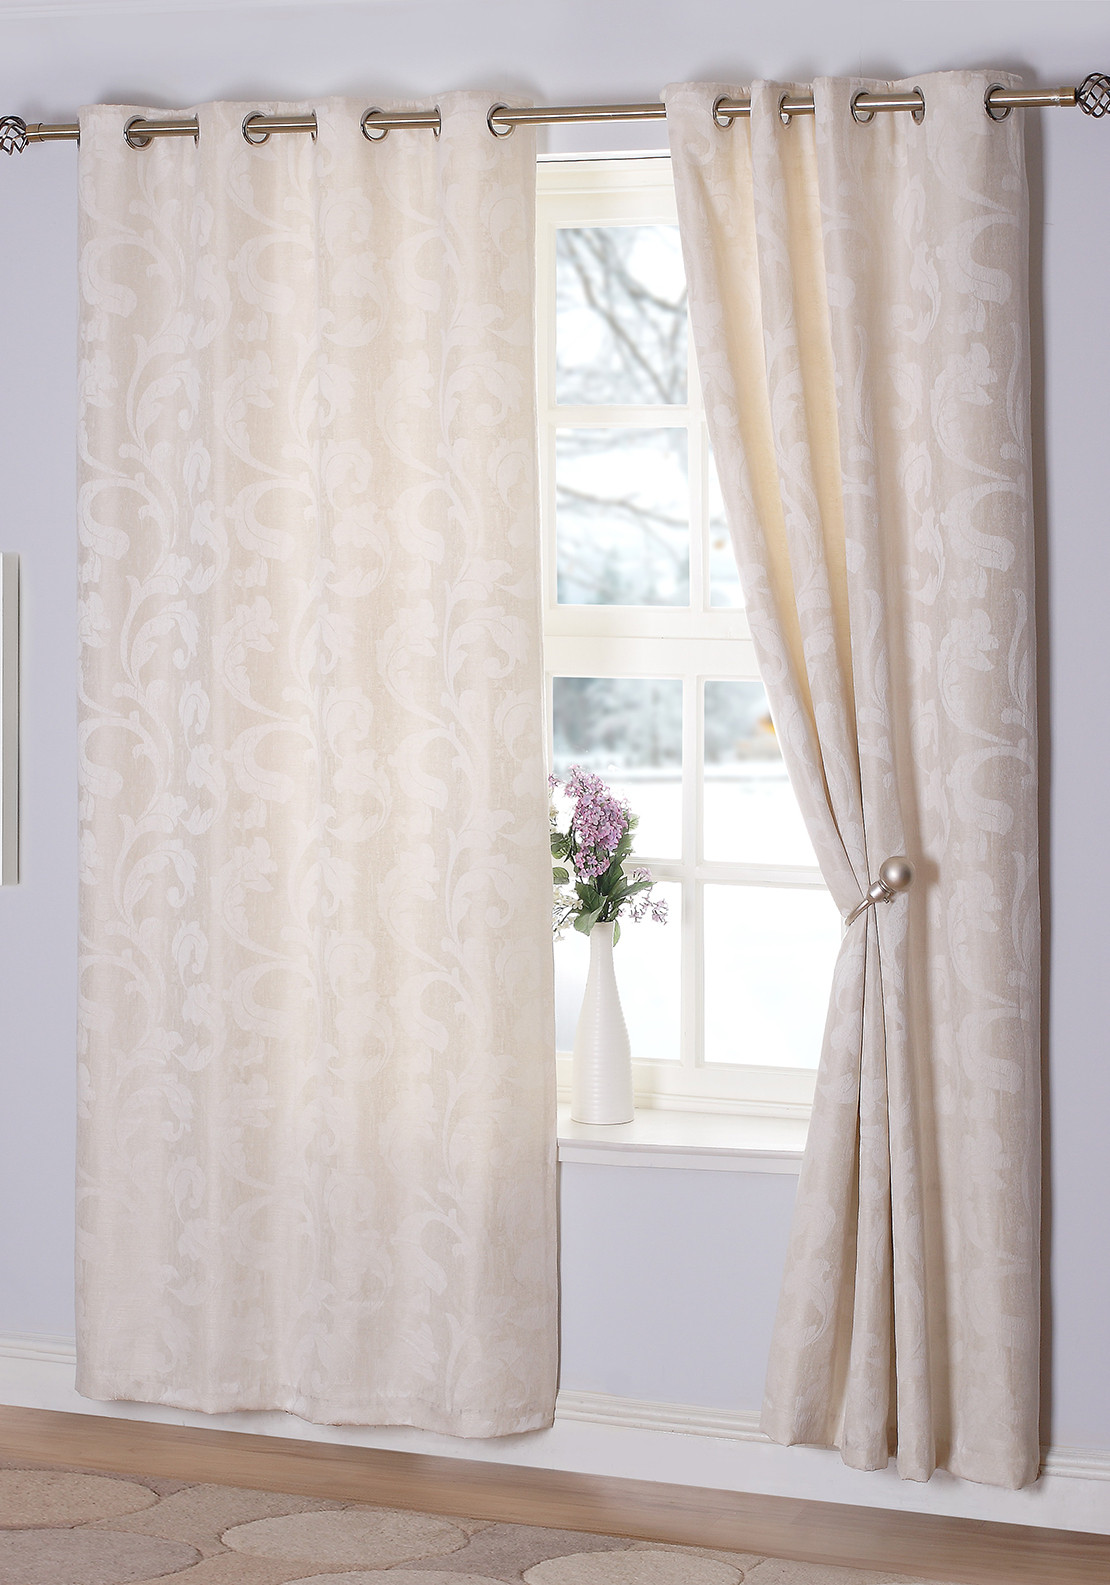 E.A. Delaney Rochelle Eyelet Curtains, Ivory